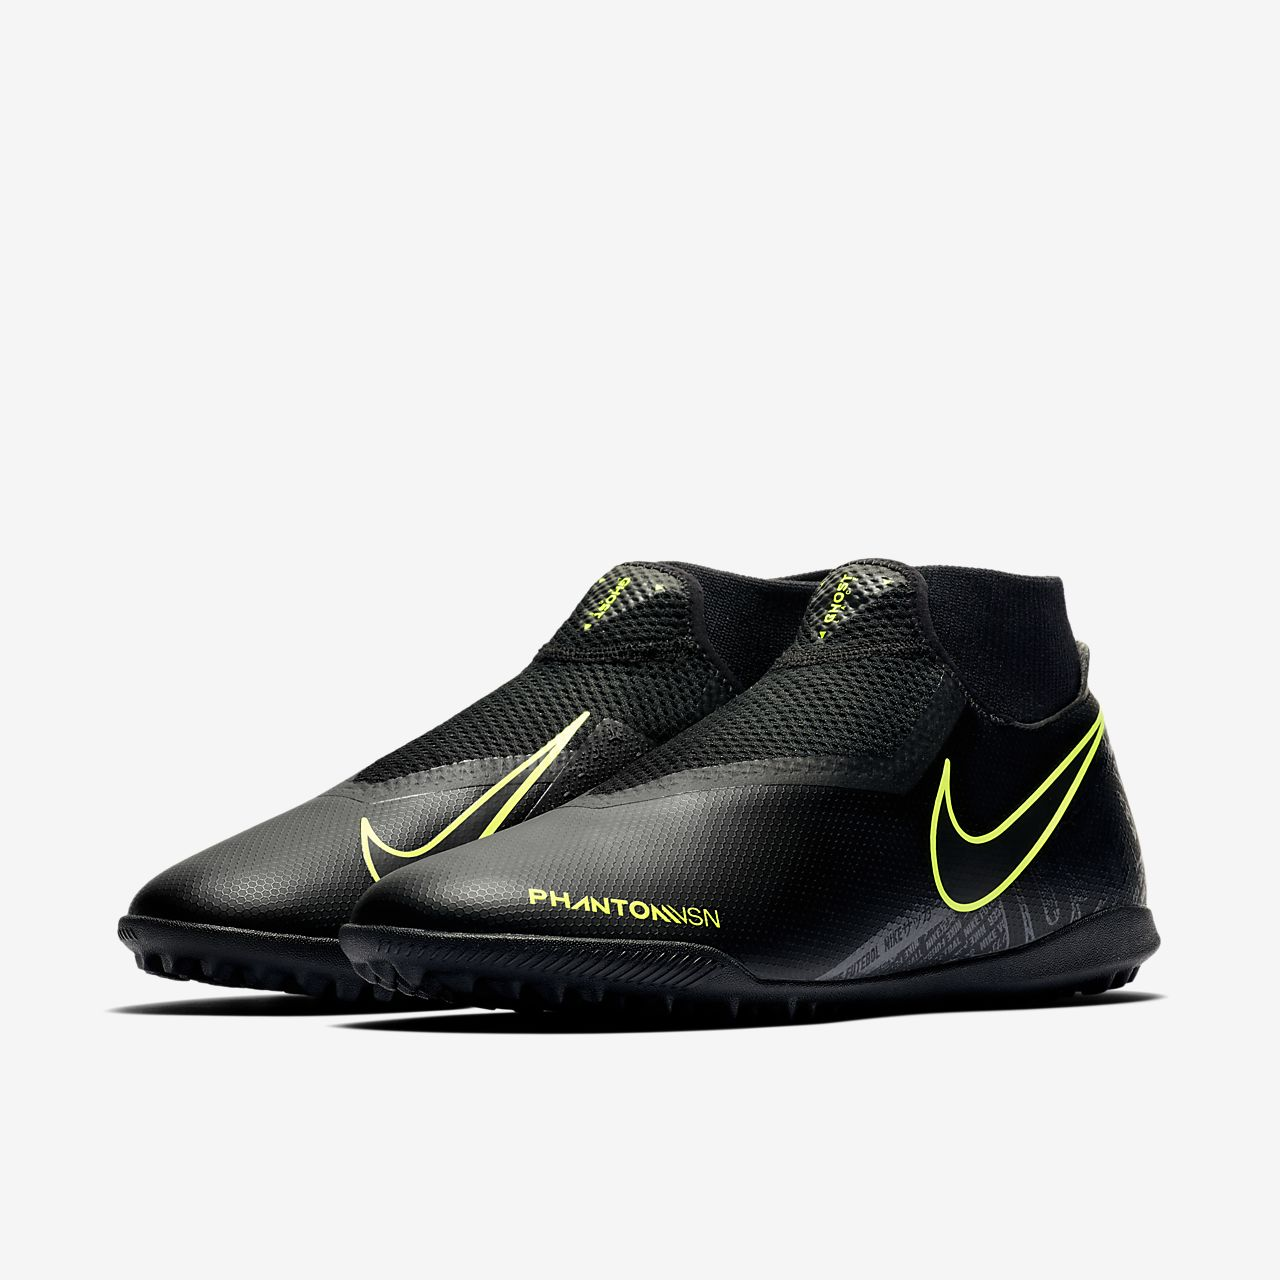 Chaussure Football Academy Vision De Nike Synthétique Surface Pour Phantom Dynamic Tf Fit TKlF1J3c